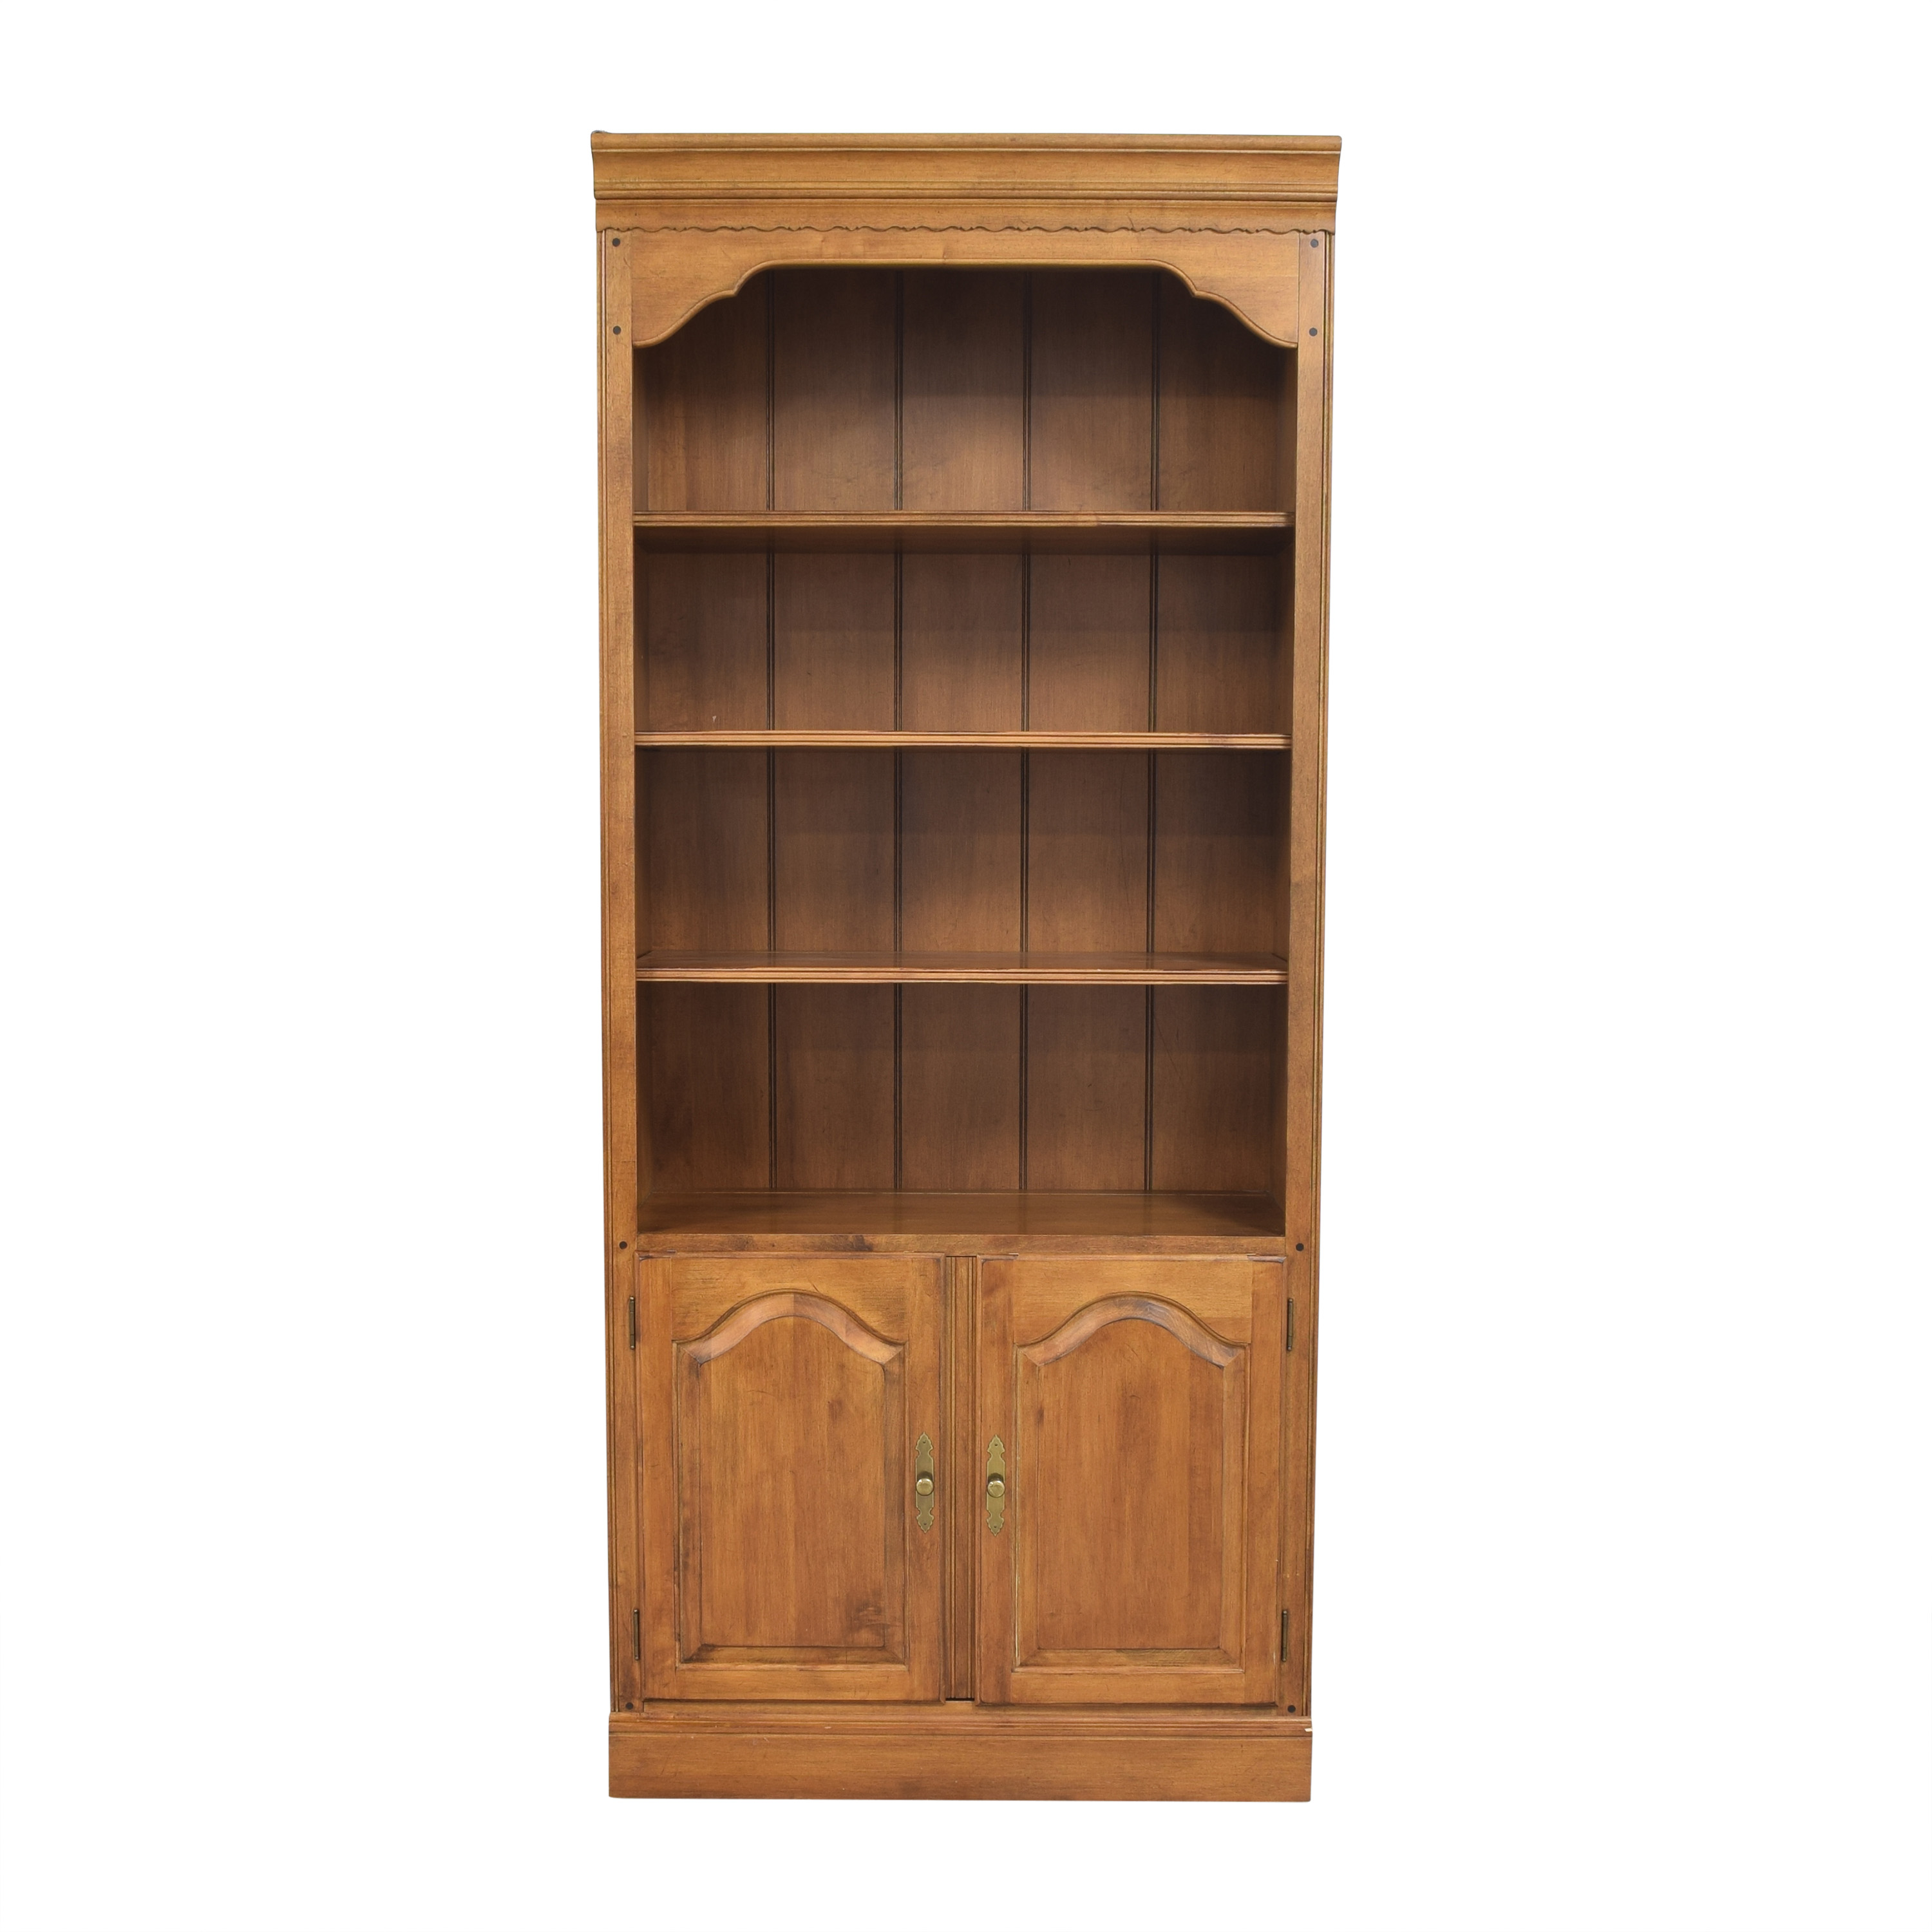 Ethan Allen Ethan Allen Circa 1776 Collection Bookcase with Cabinet for sale